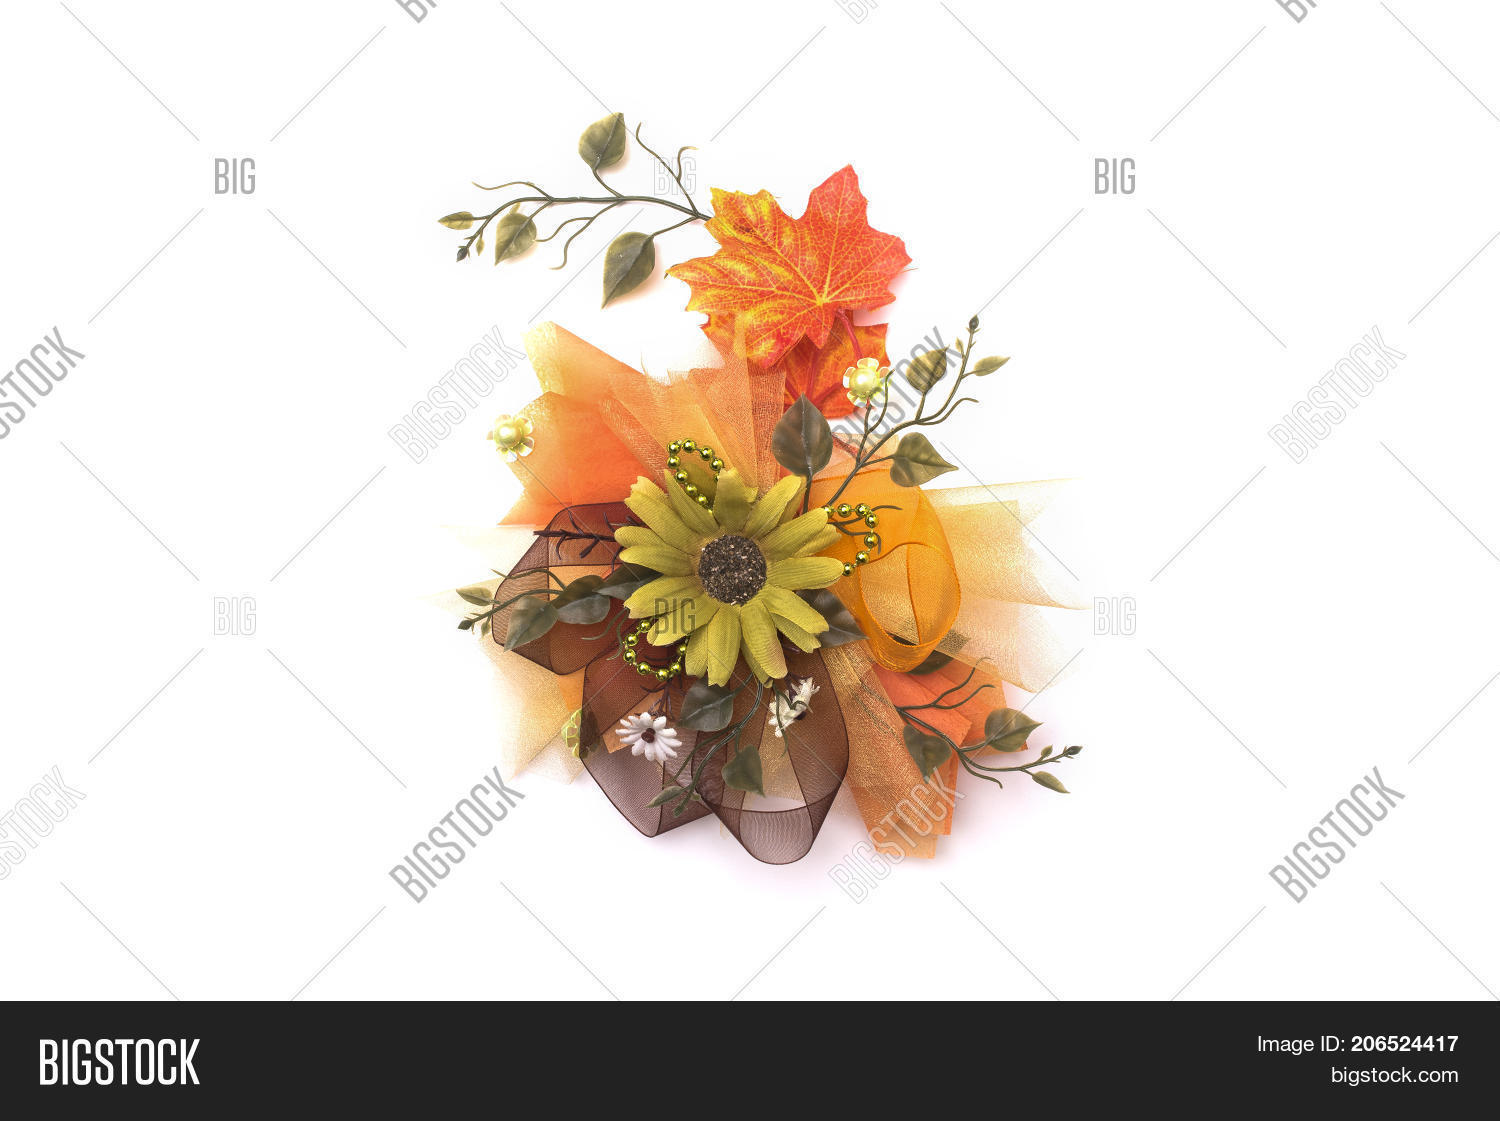 Artificial Autumn Flowers Isolated Image Photo Bigstock